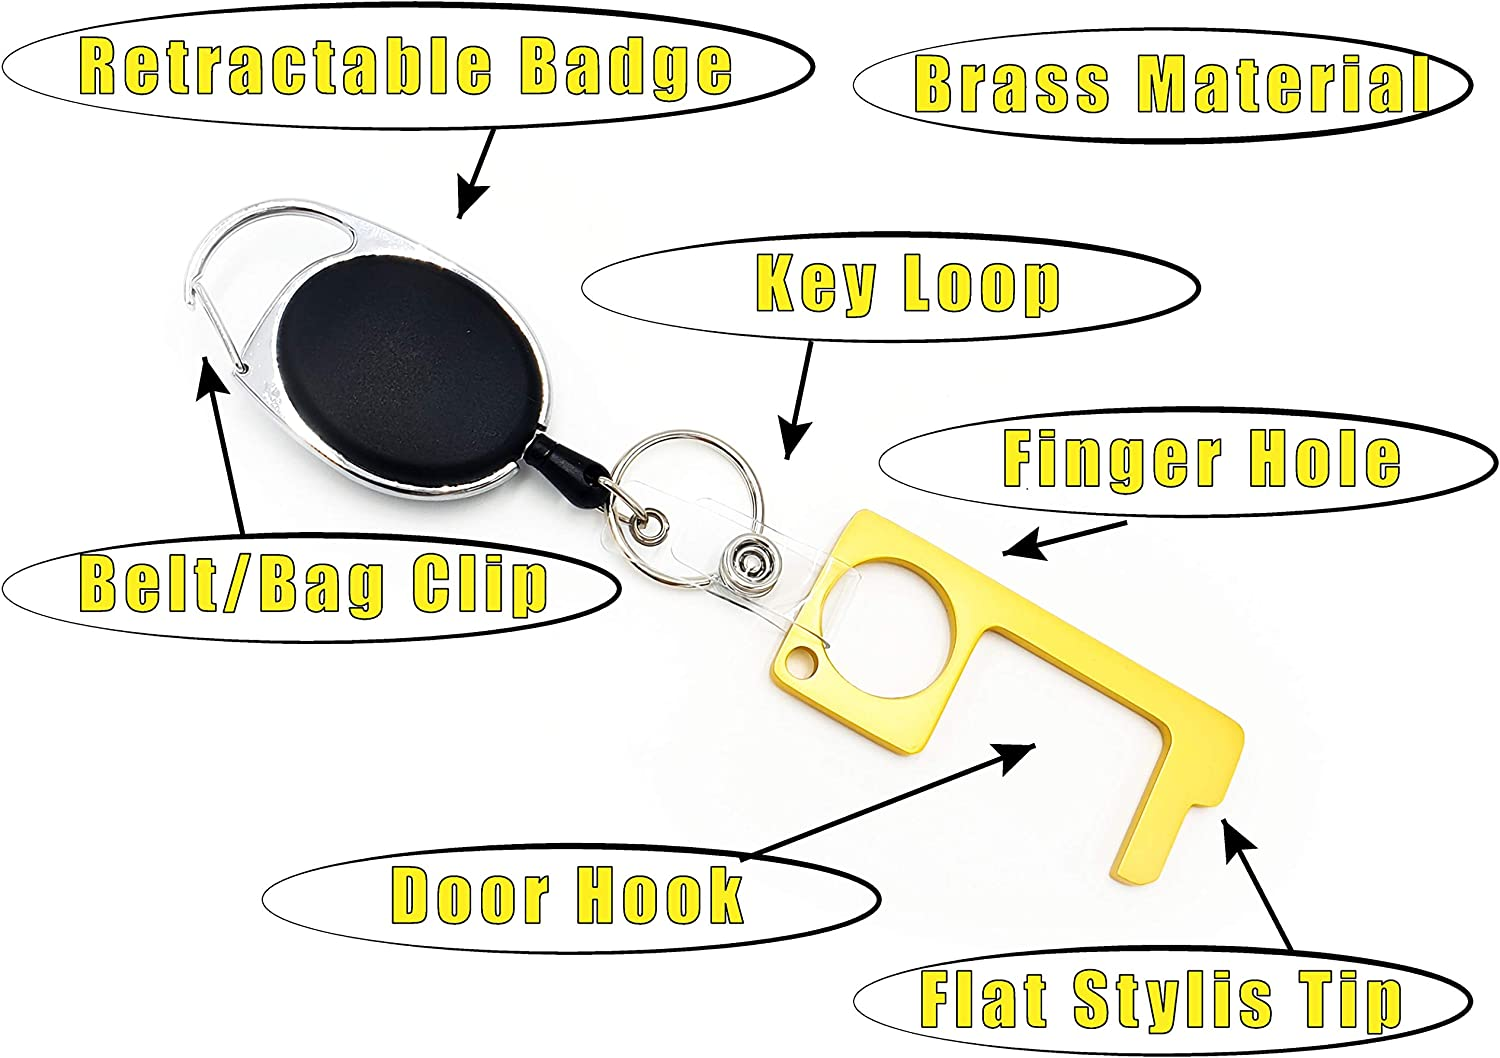 No Touch Door Opener Tool With Retractable Badge by Tennoji//Antibacterial//Antimicrobial//Smartkey//Button Pusher Tool//Multi Tool Key-chain in 3 Colors